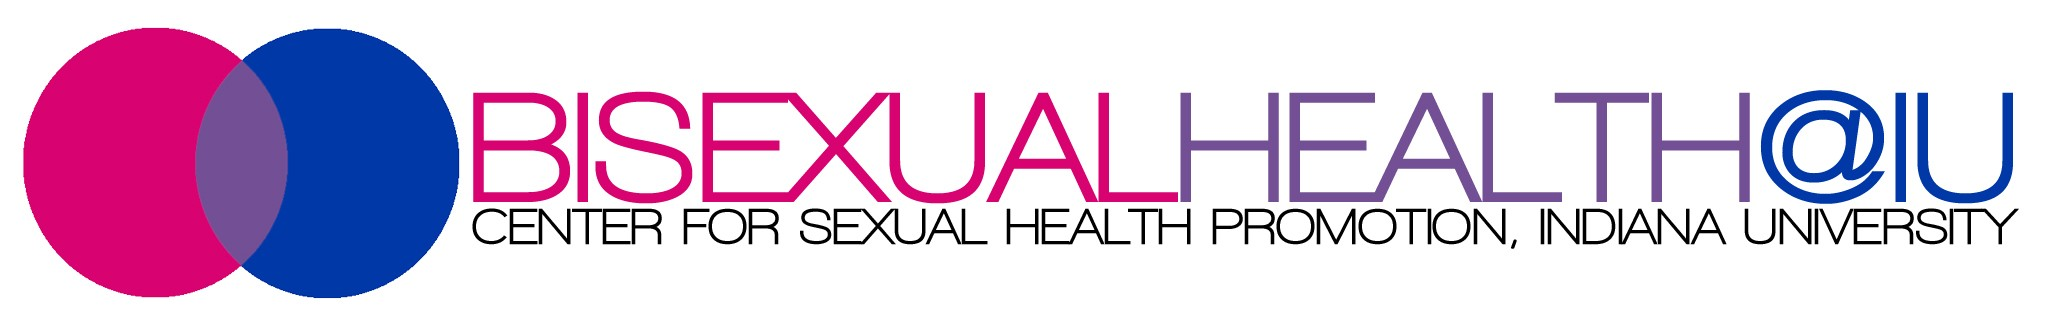 Bisexual Health Logo